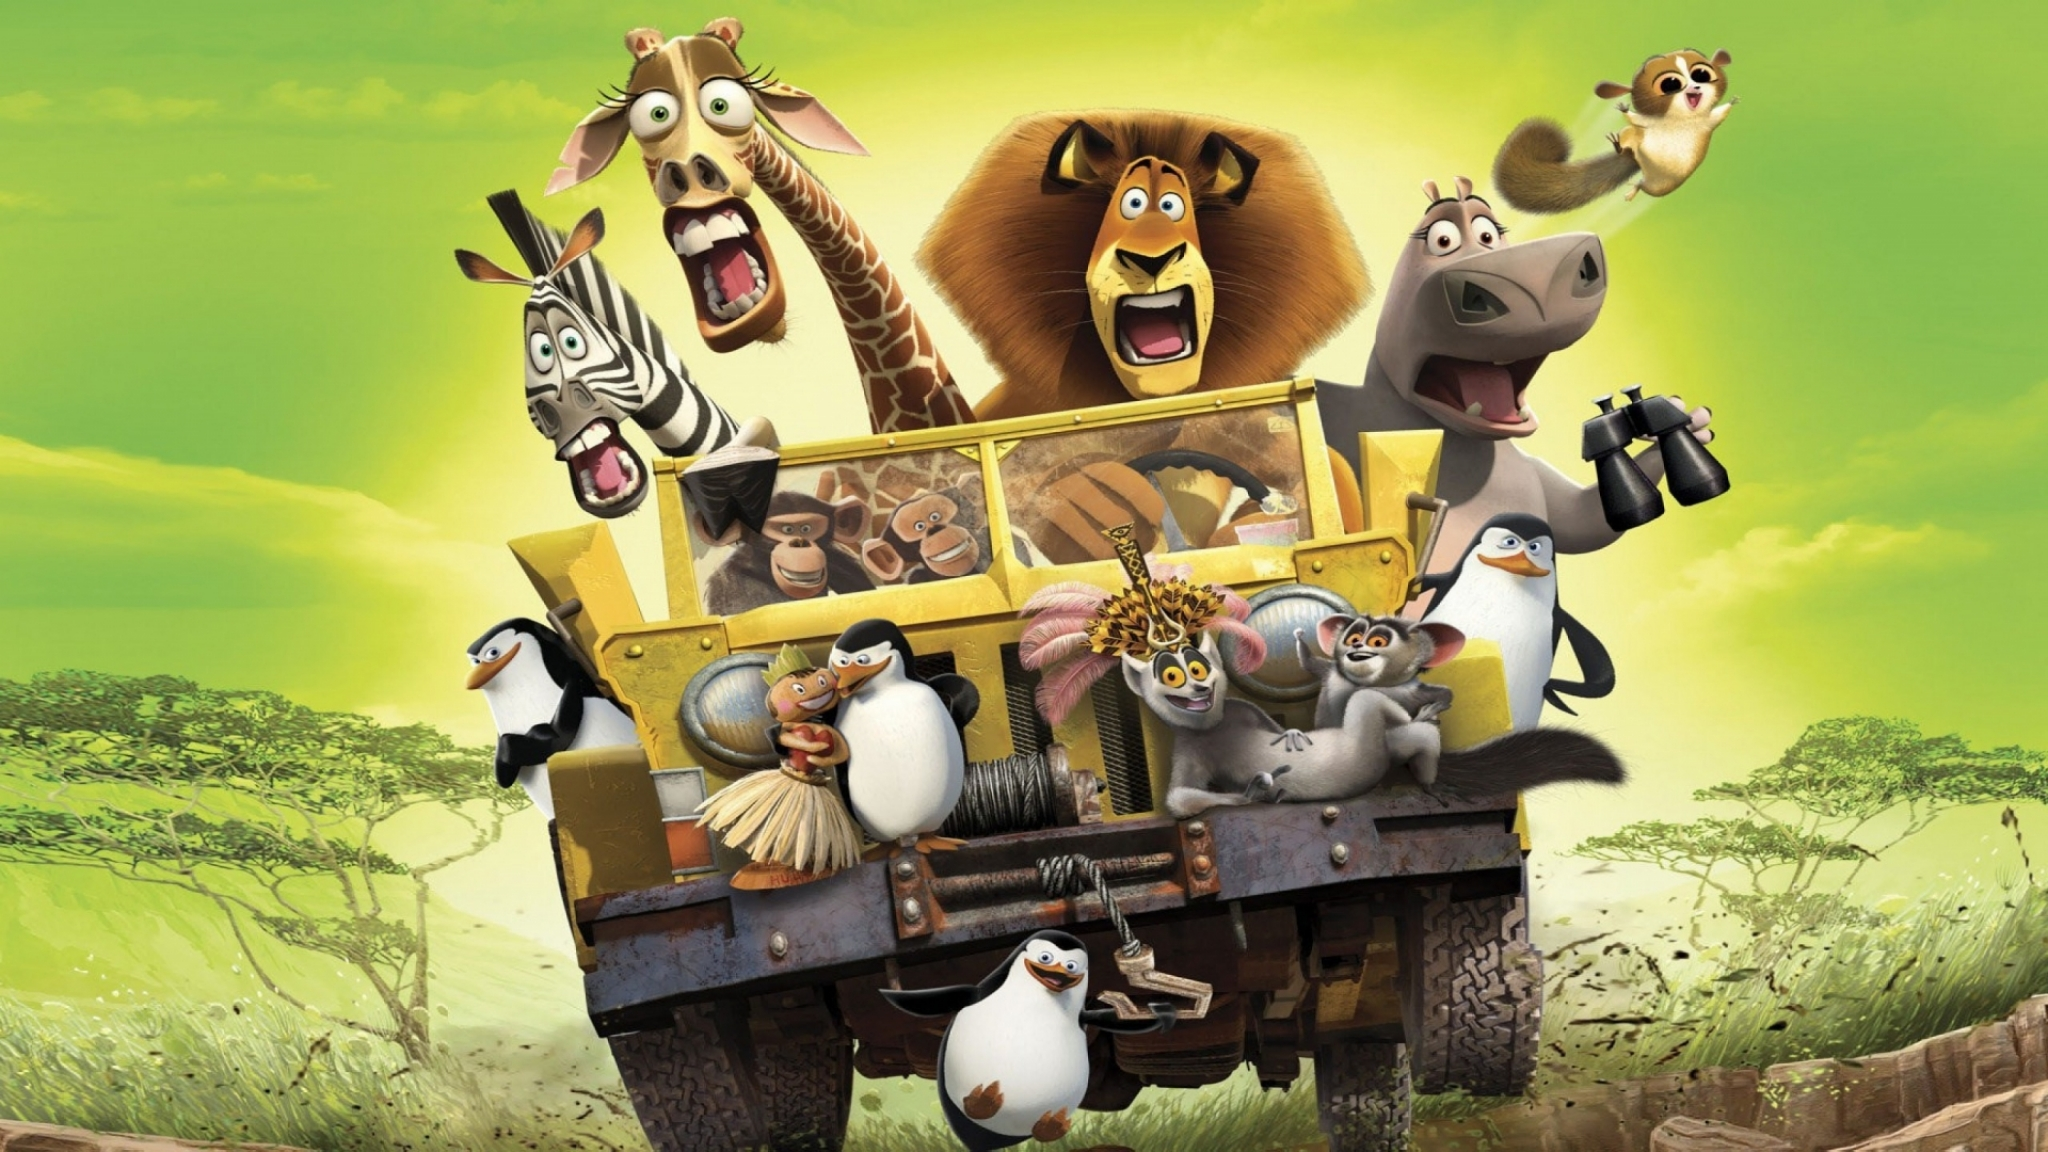 Madagascar escape 2 africa full hd wallpaper and - Madagascar wallpaper ...